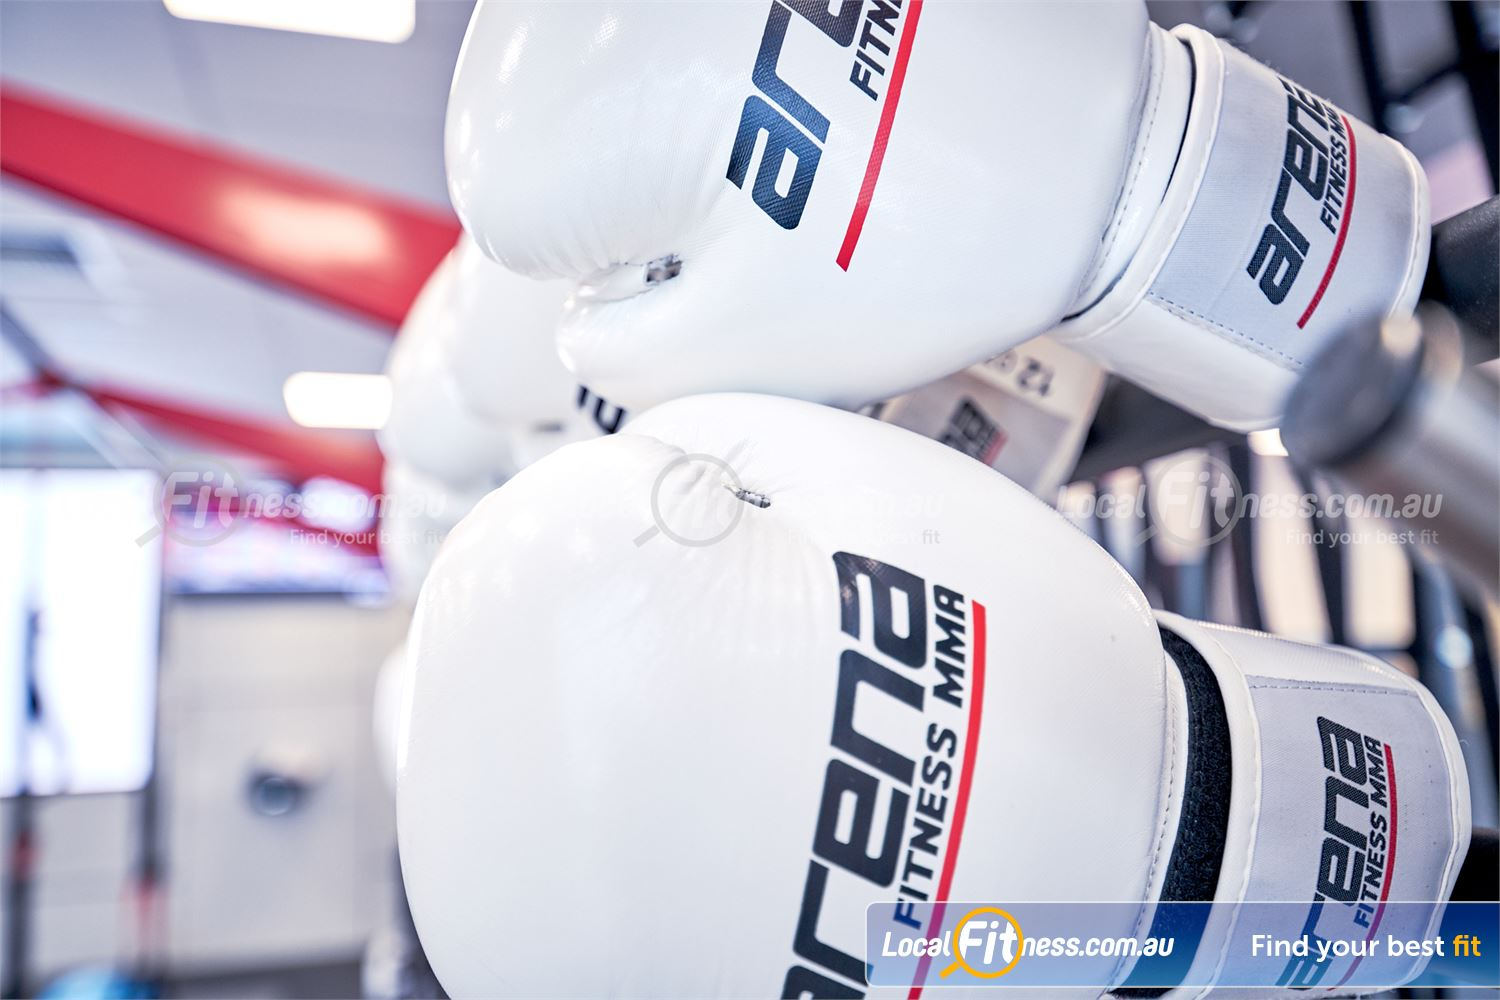 Goodlife Health Clubs Knox City Near Wantirna Boxing & MMA merged into intense coach-led circuits.